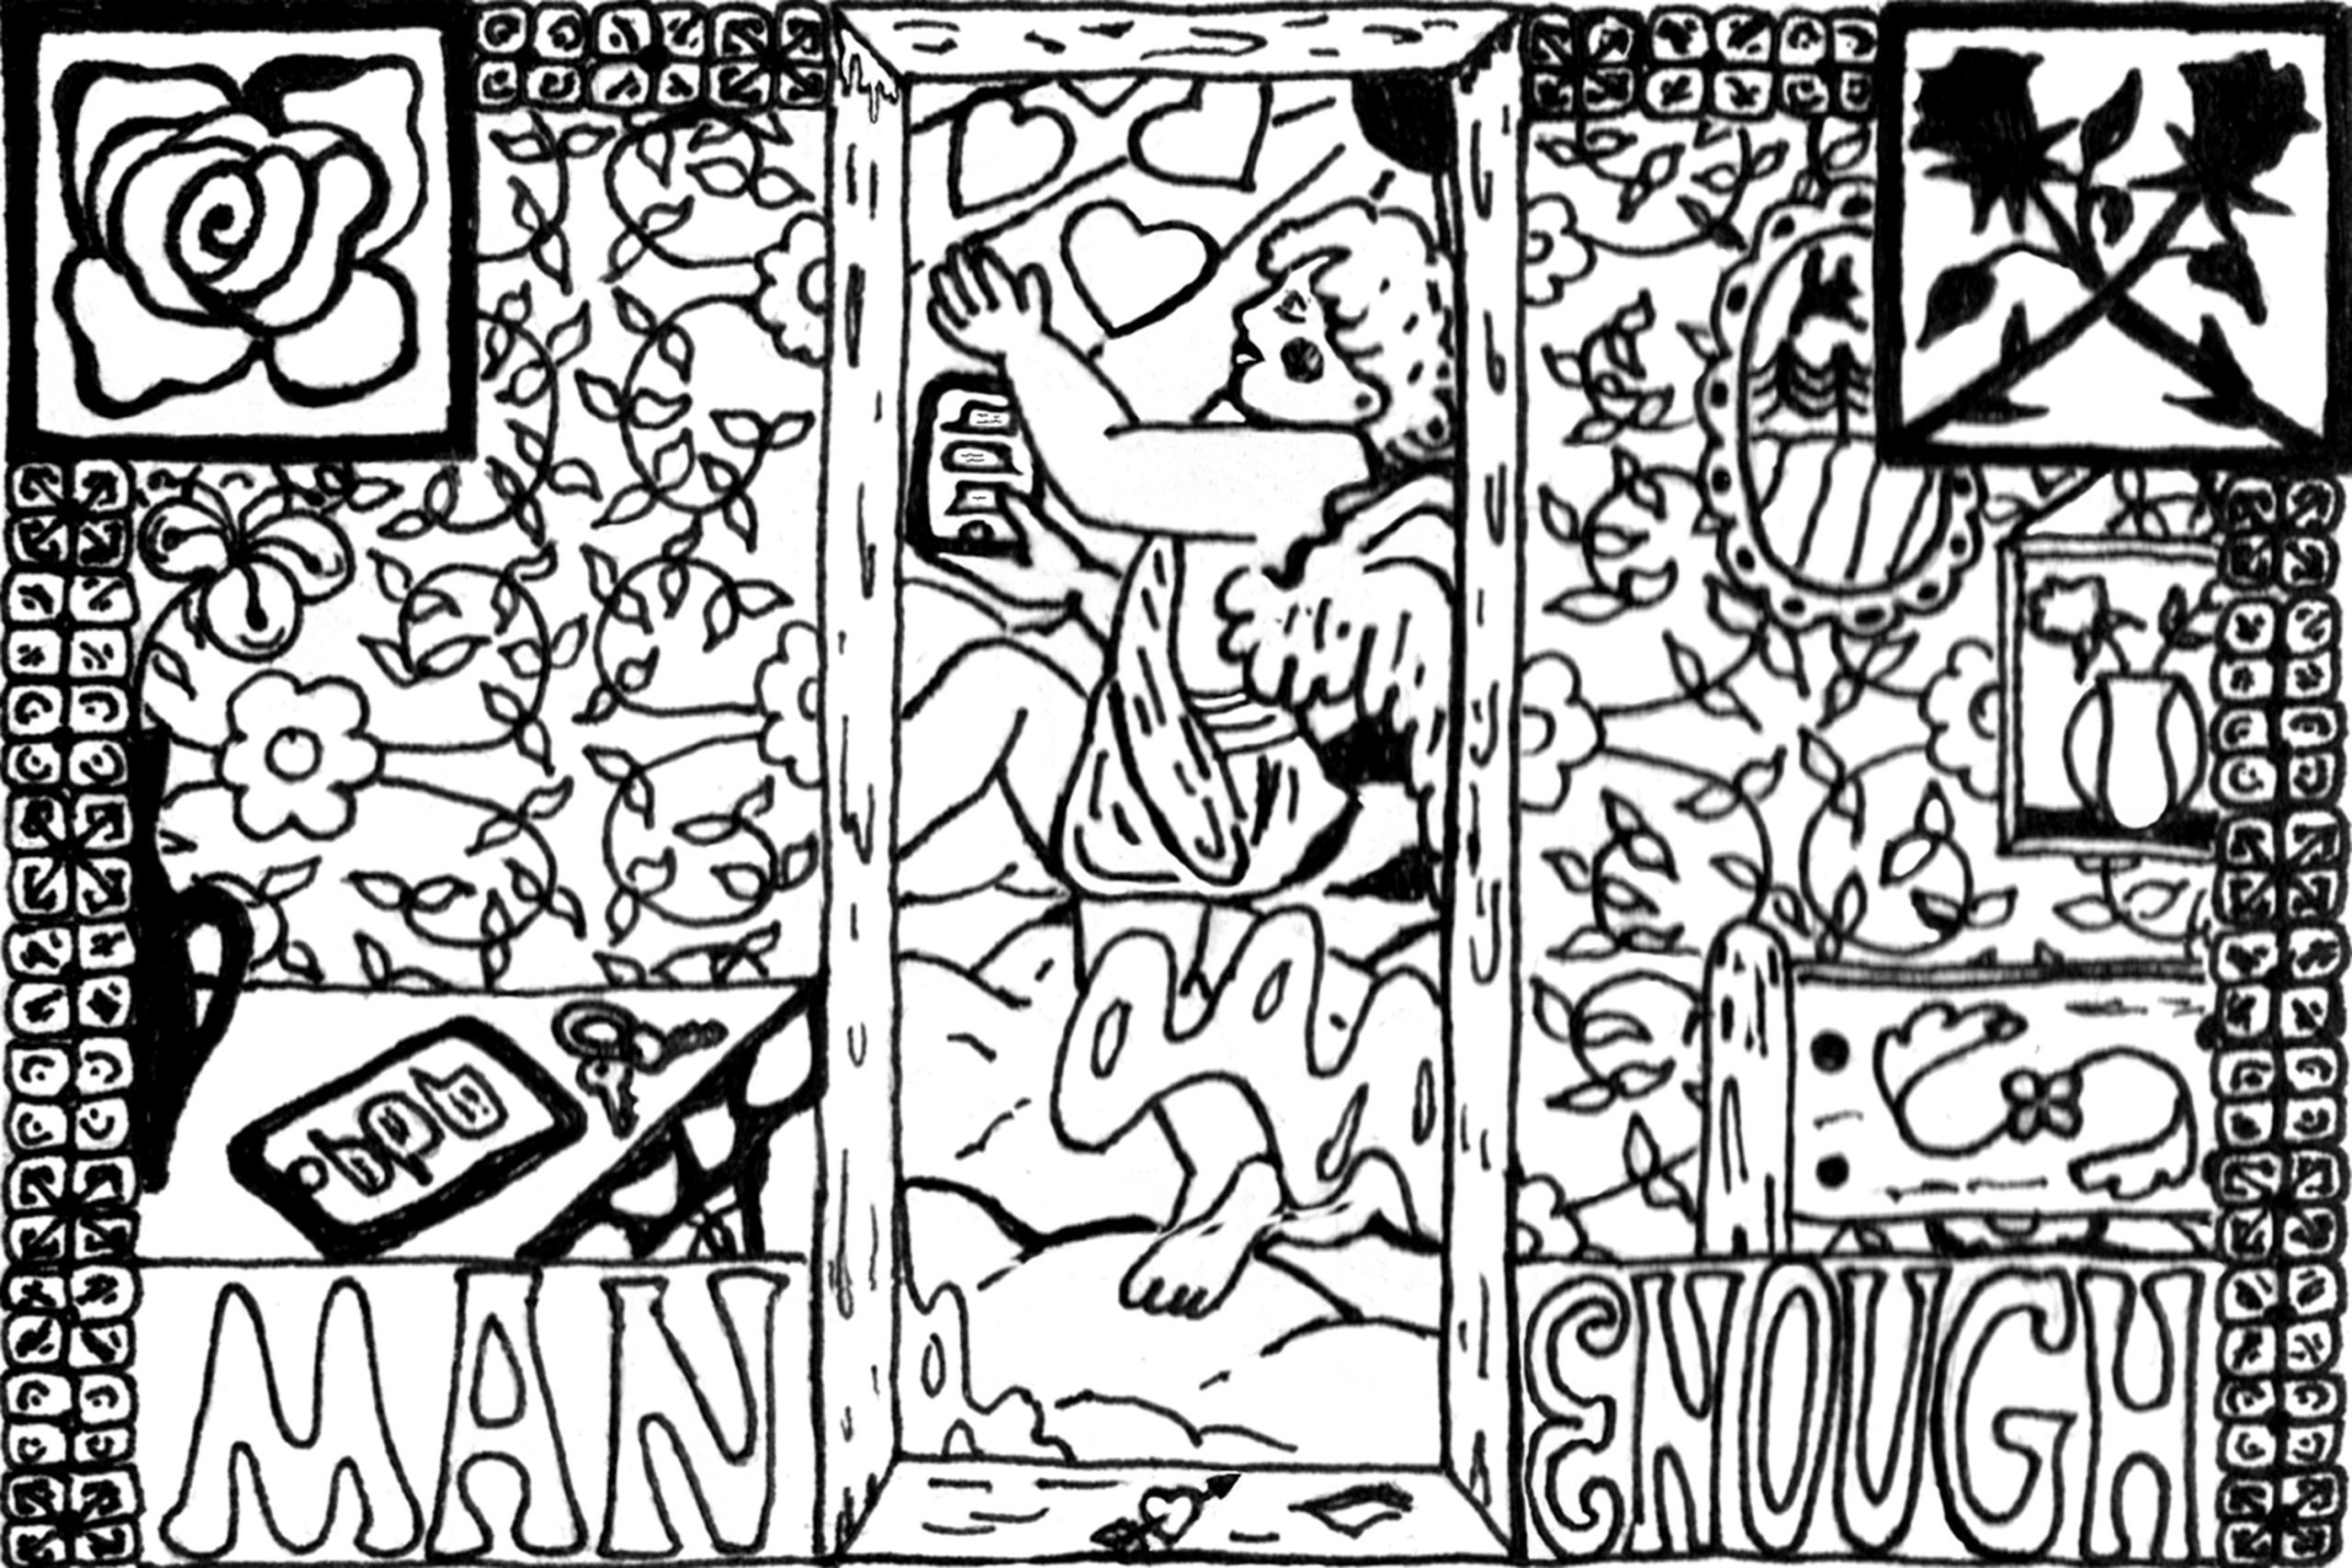 """Image: A black and white illustration of vines that sprawl around a doorframe in the middle of the composition. In the top left corner is a rose and beneath it is a table top with a pair of keys, a phone, and a vase. In the top right corner is an 'X' made from two black roses. Beneath is a vase with flowers. In the bottom left and right corners are the words """"MAN"""" """"ENOUGH"""". Through the doorway is cupid on a phone. Image created by Jess Cadwell."""